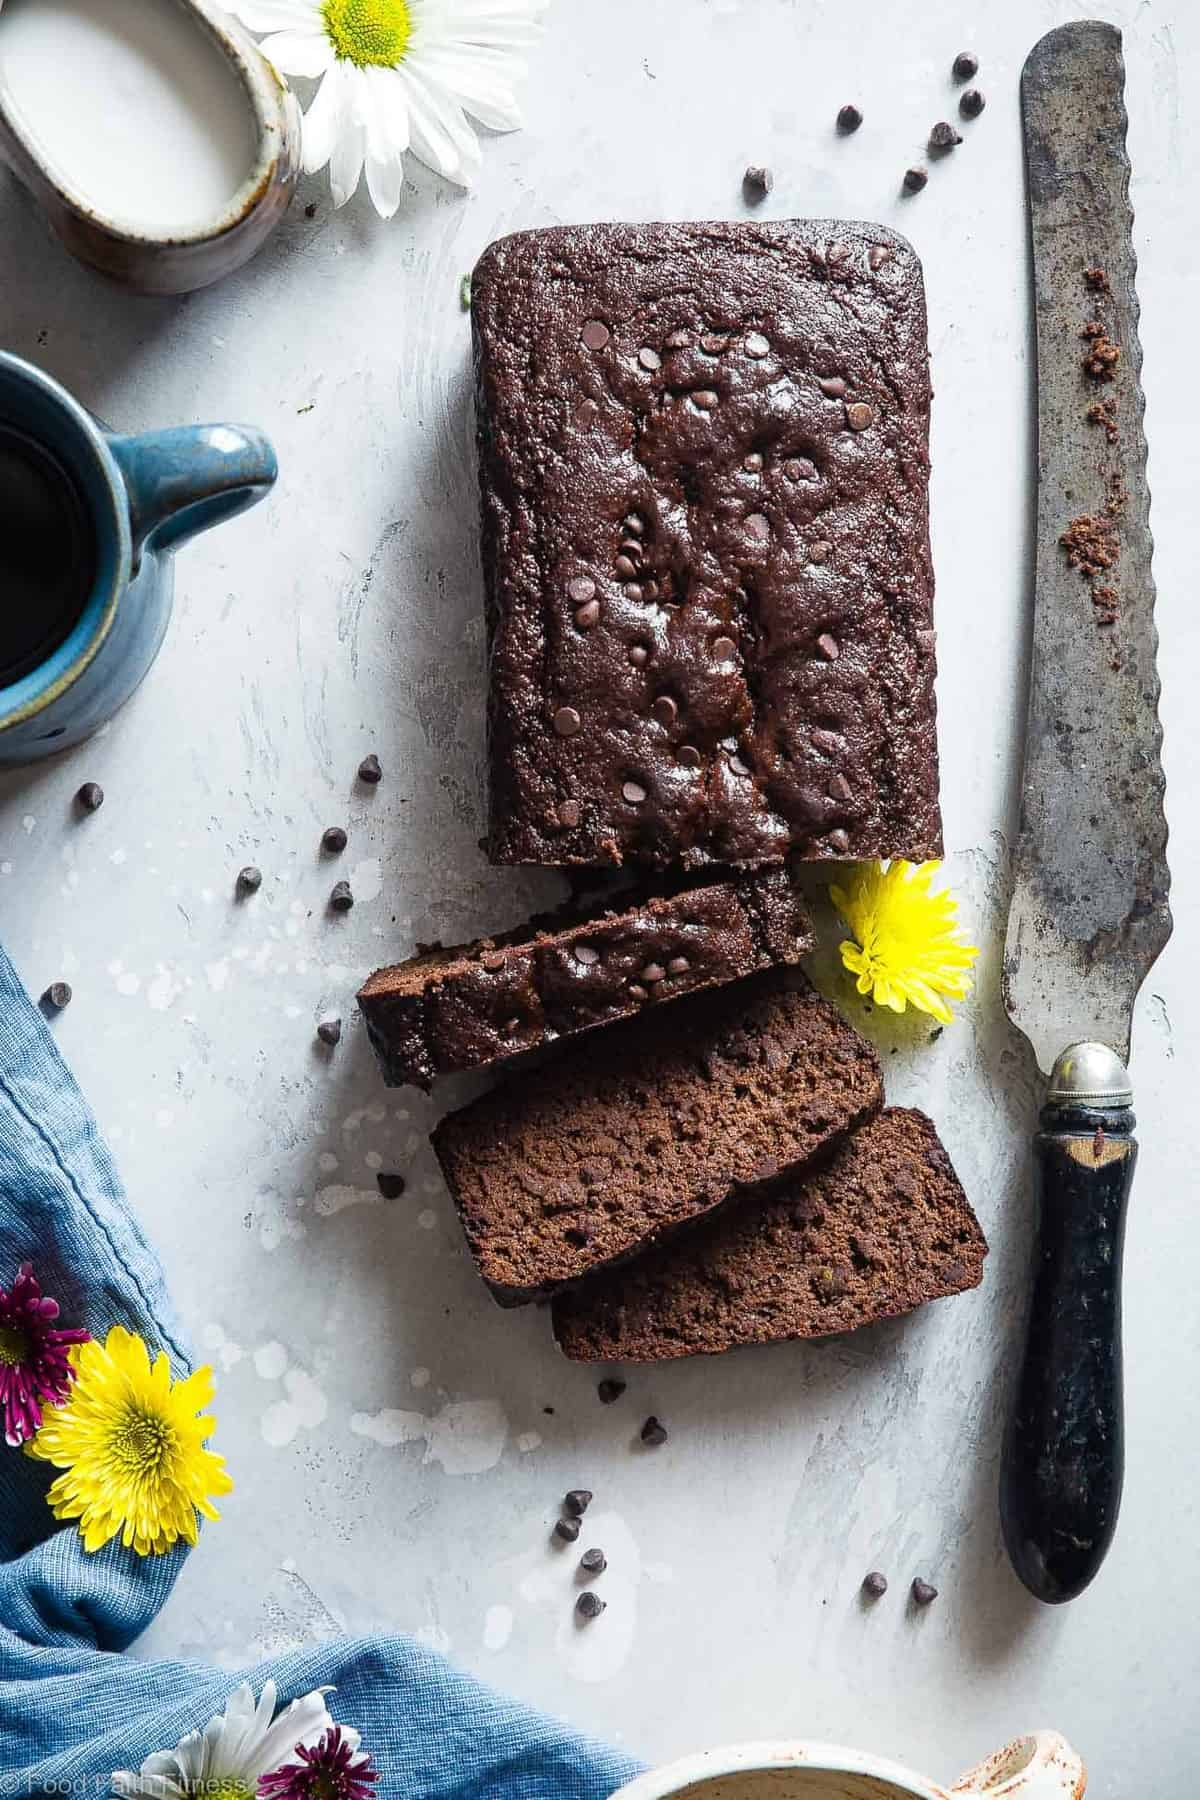 Easy Chocolate Paleo Zucchini Bread - This gluten free zucchini bread is secretly packed with protein and collagen to support healthy skin and bones! It's a healthy, breakfast or snack for kids and adults, and freezes great! | #Foodfaithfitness | #FoodFaithFit | #Paleo #Glutenfree #Collagen #Chocolate #Healthy